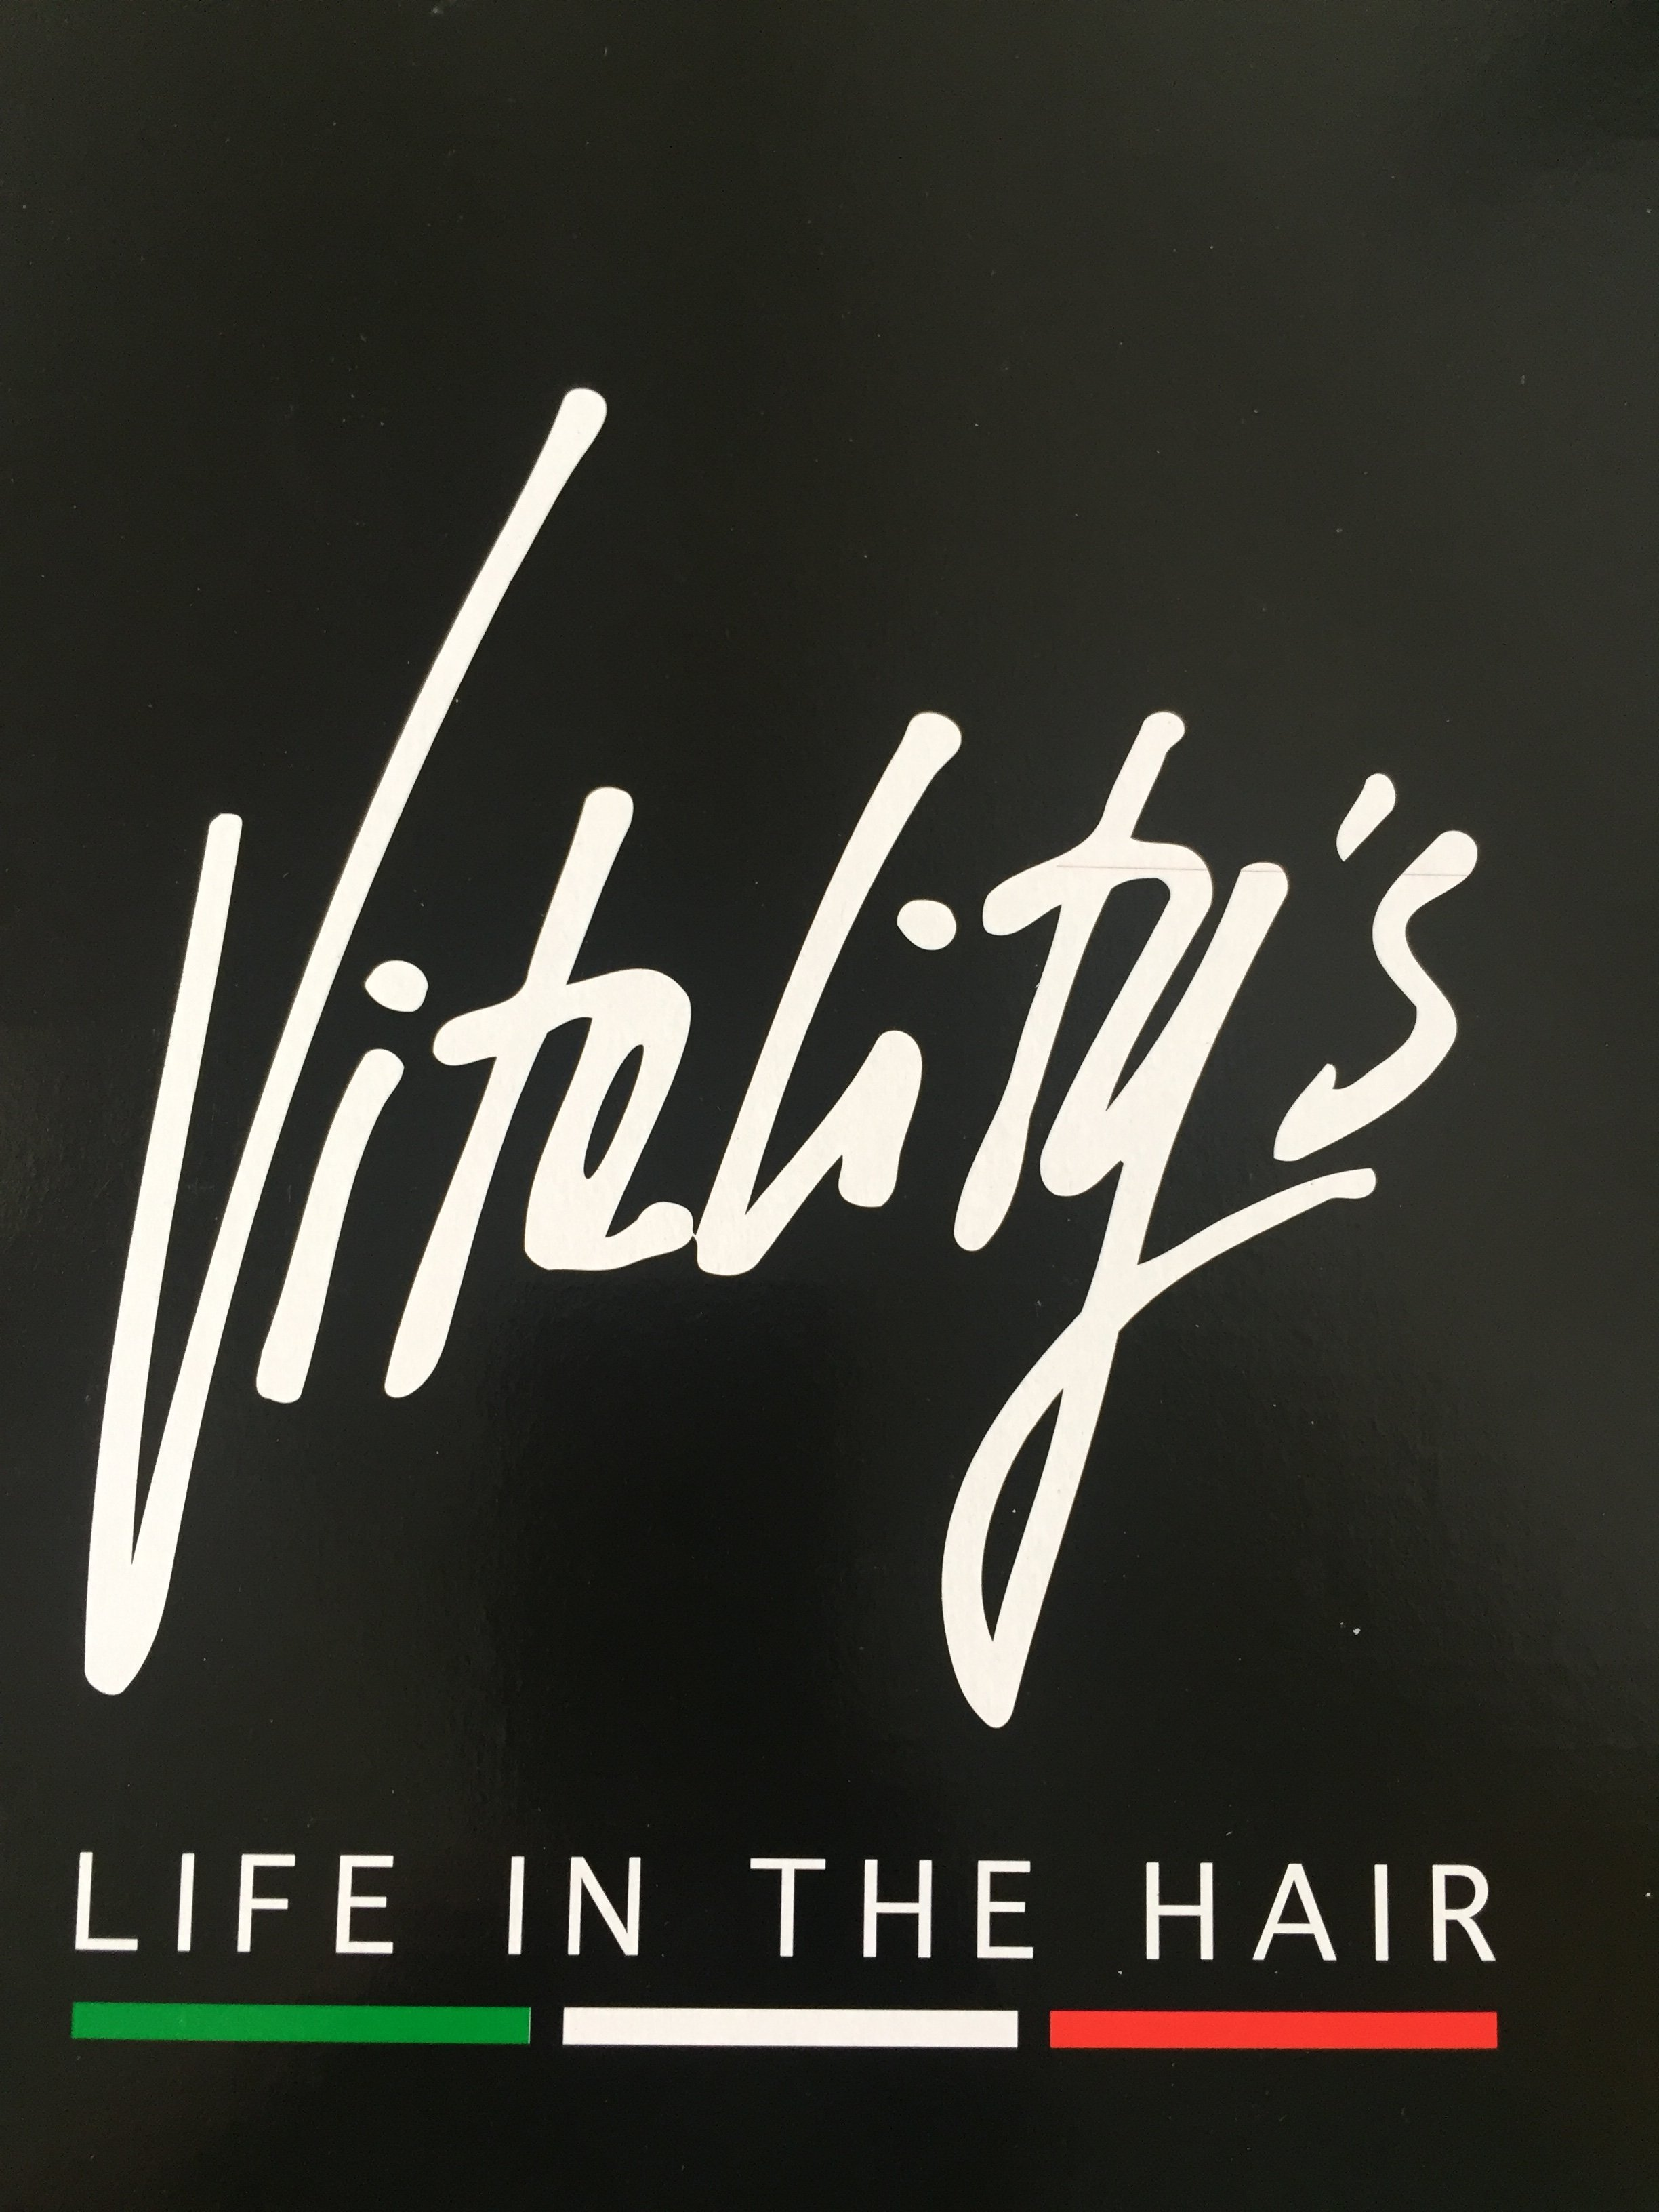 Vitality's life in the hair